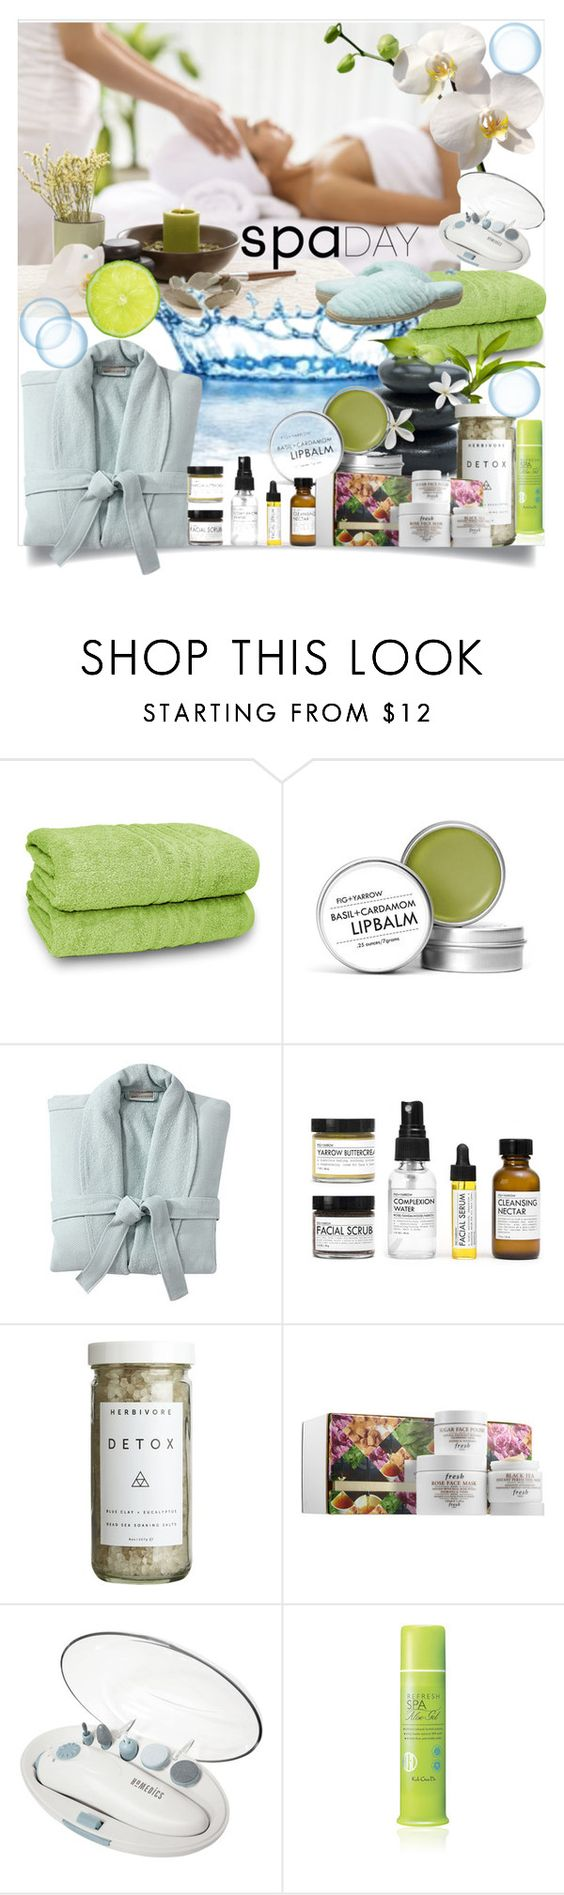 """shh...."" by anilia ❤ liked on Polyvore featuring beauty, Fig+Yarrow, Pottery Barn, CB2, Fresh, Homedics, Koh Gen Do, Acorn and spaday"